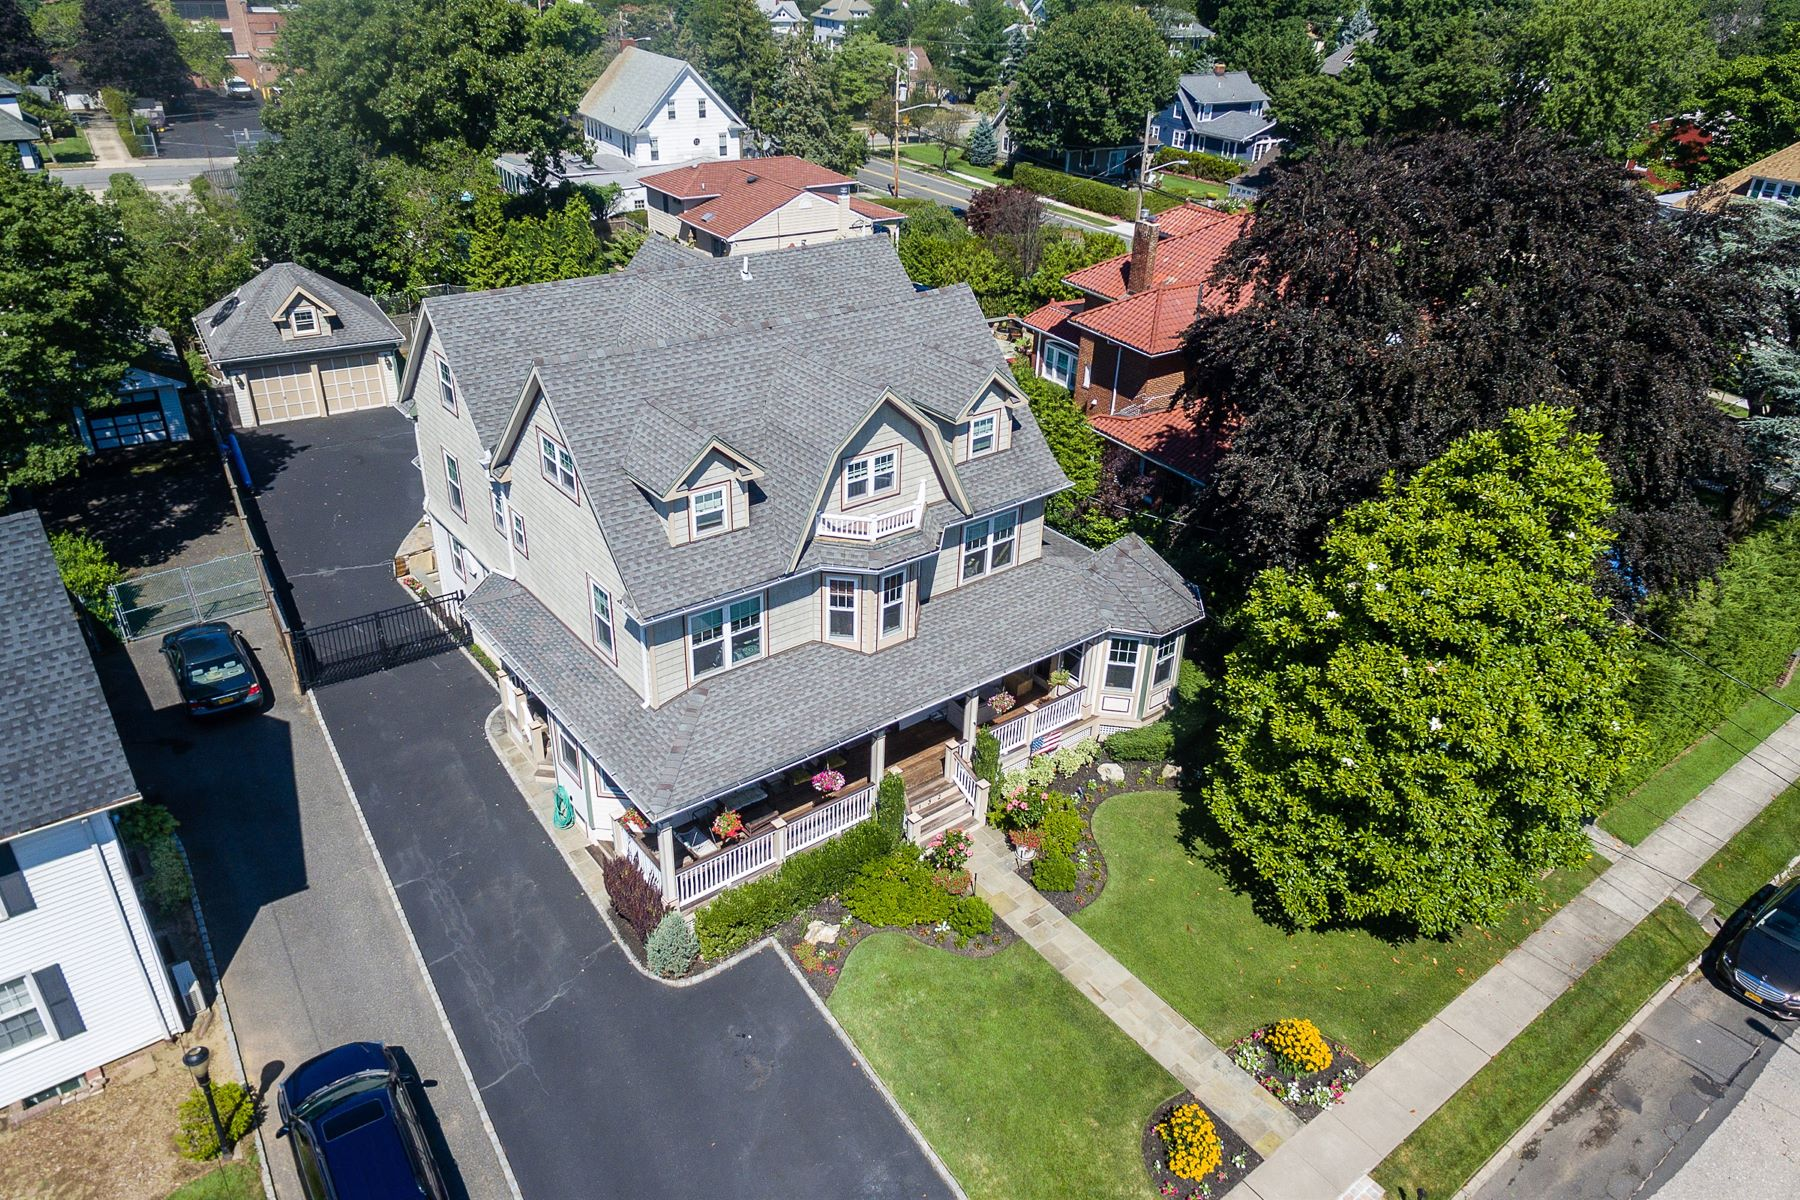 Maison unifamiliale pour l Vente à Victorian 132 Windsor Ave Rockville Centre, New York 11570 États-Unis